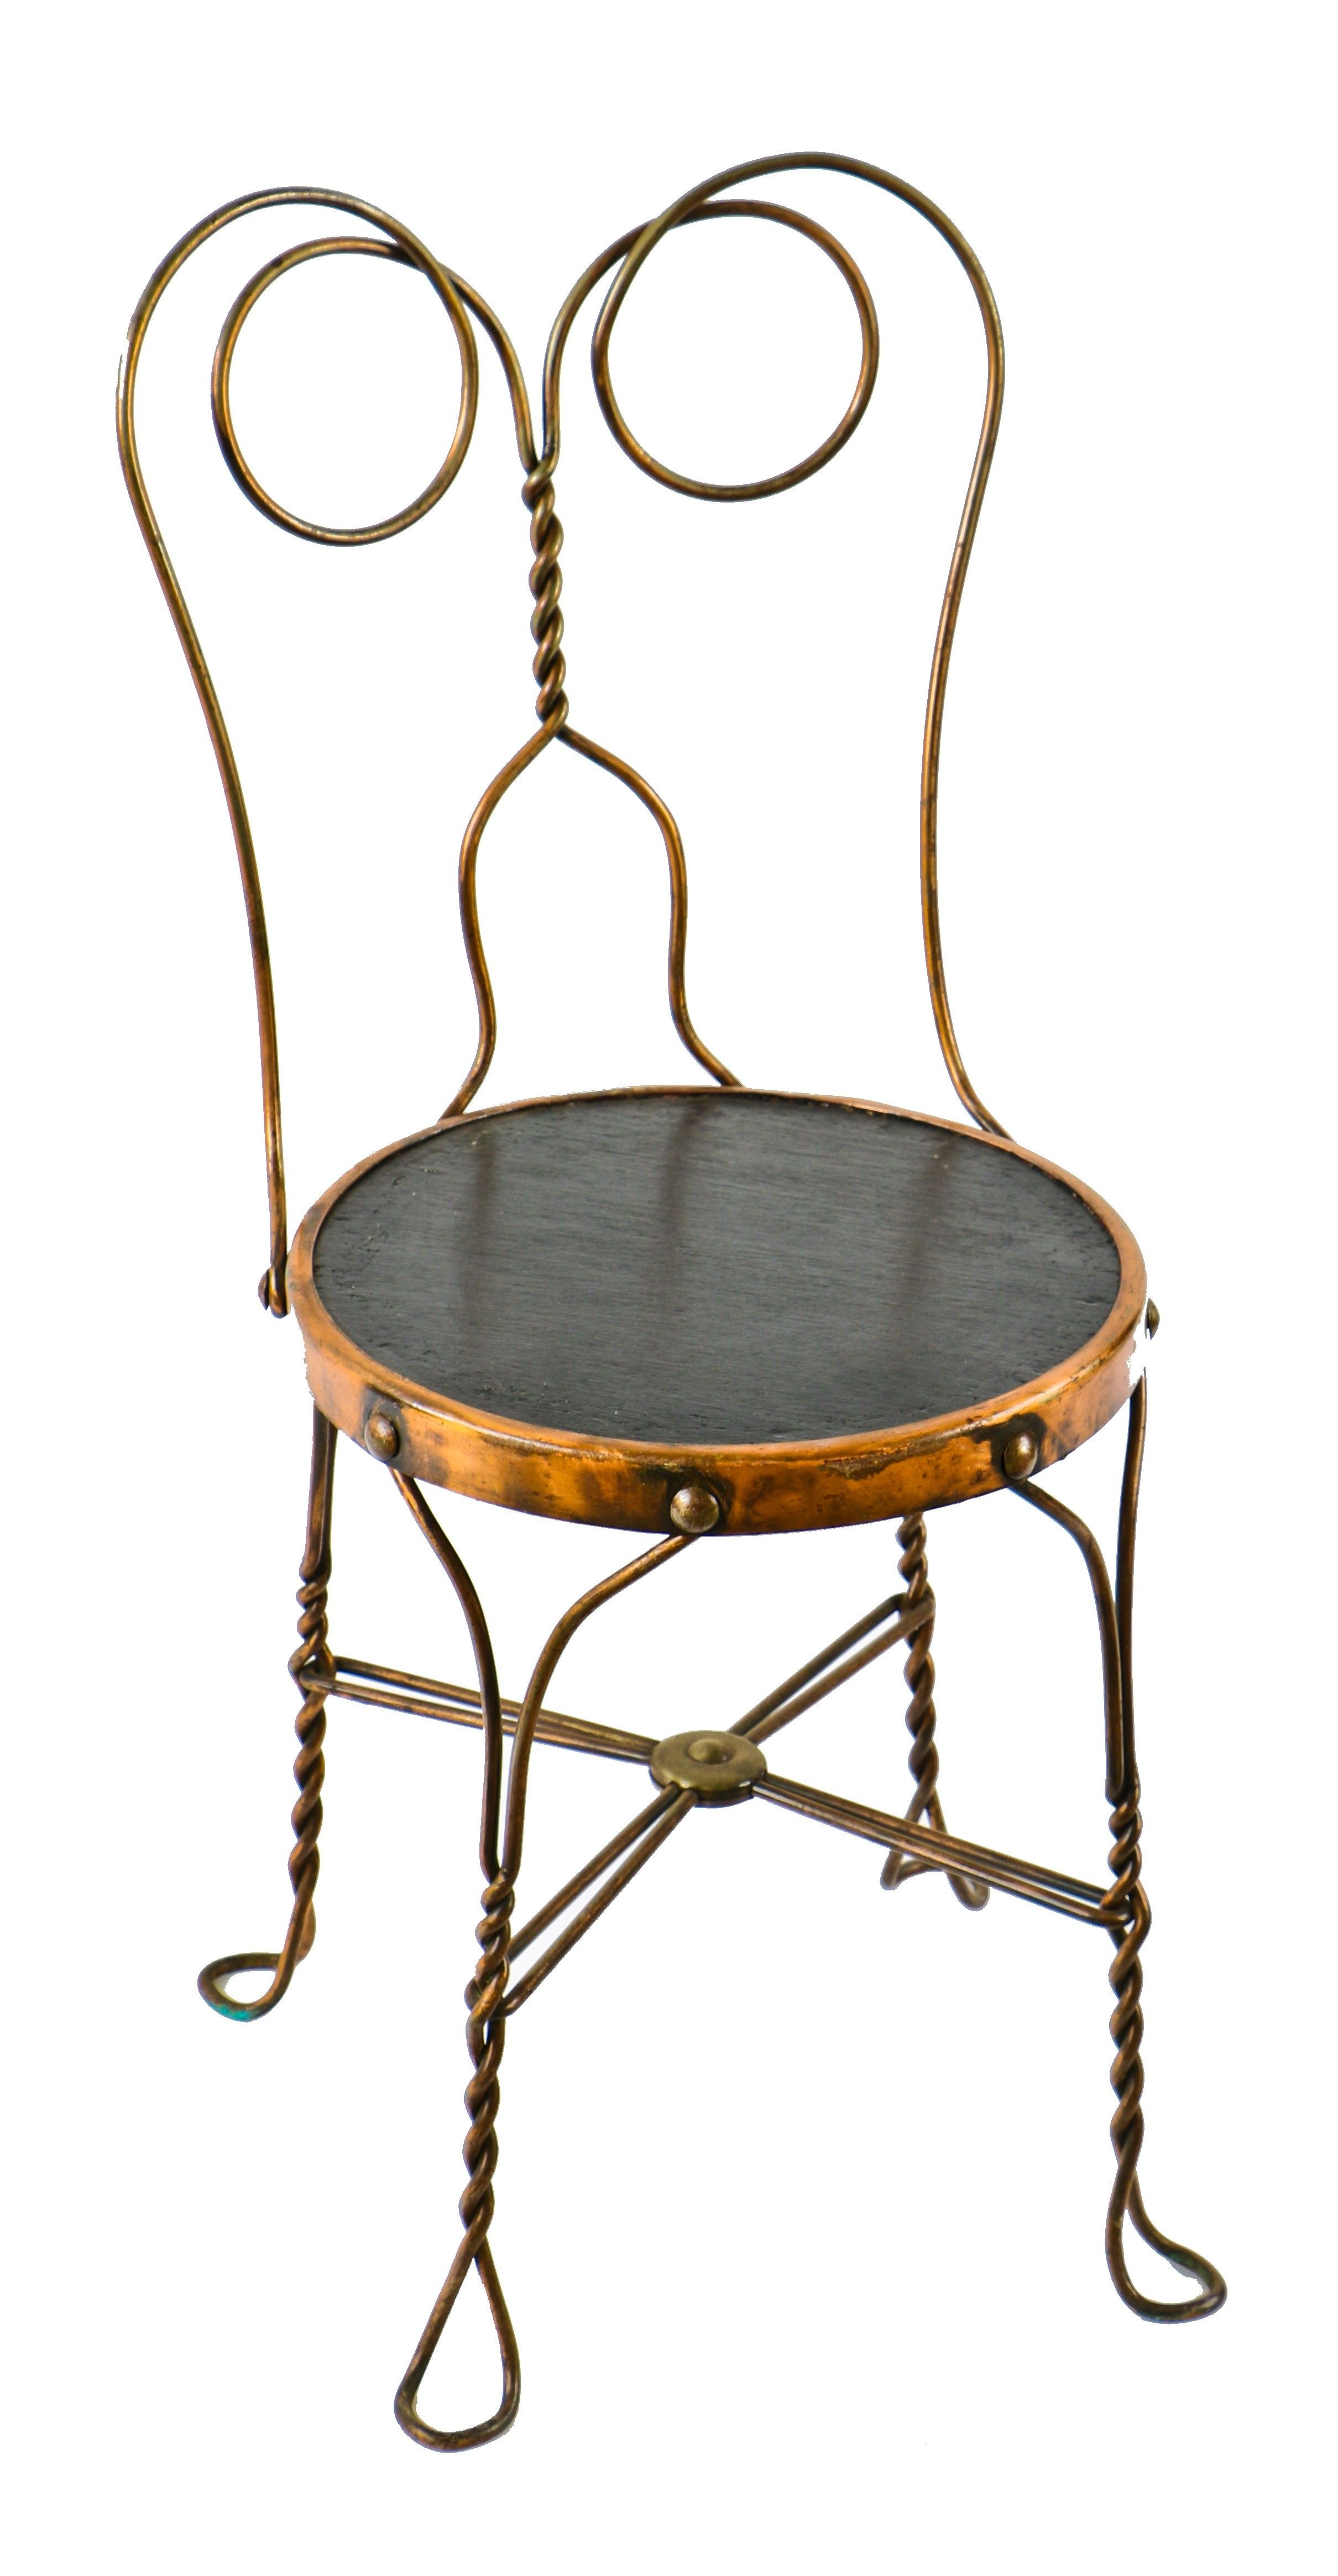 Excellent Single All Original And Intact Turn Of The Century Antique Beatyapartments Chair Design Images Beatyapartmentscom